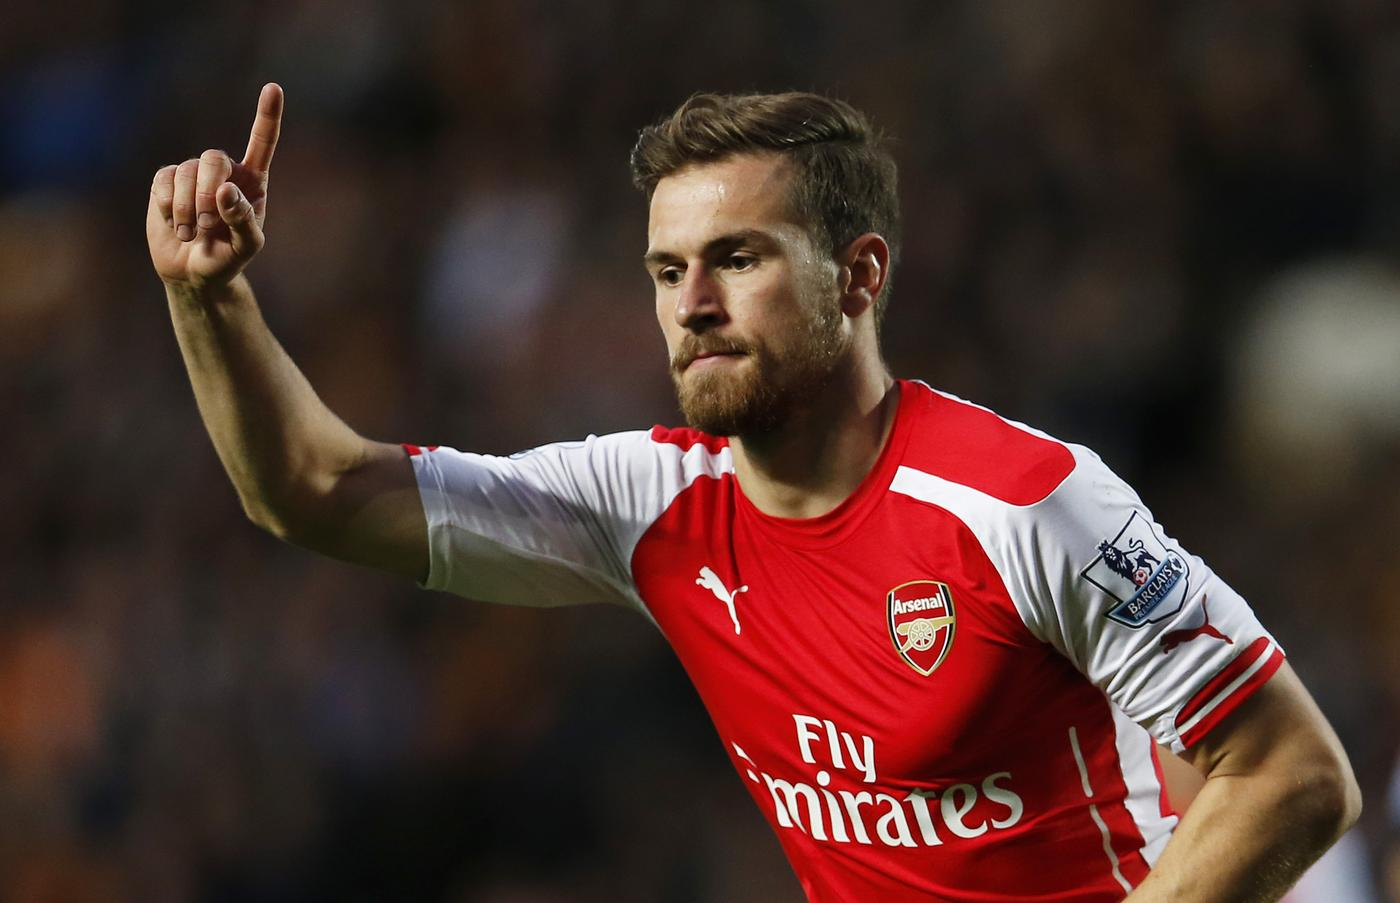 Aaron Ramsey got on the score-sheet against Hull City